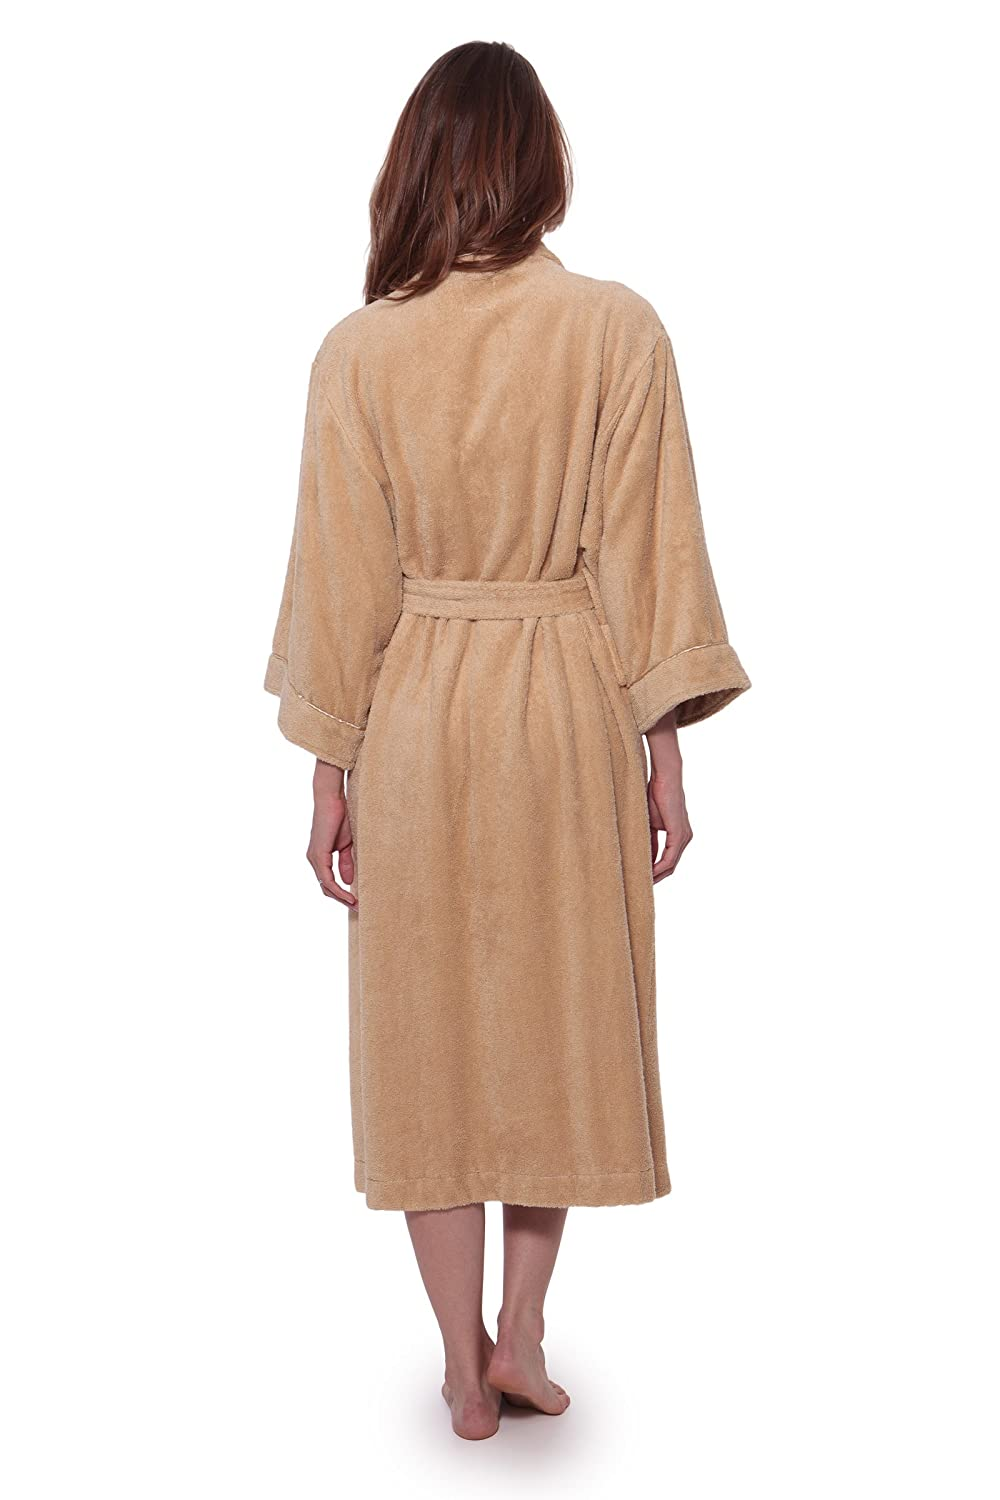 cee2730db6 Women s Luxury Terry Cloth Bathrobe - Bamboo Viscose Robe by Texere  (Ecovaganza) at Amazon Women s Clothing store